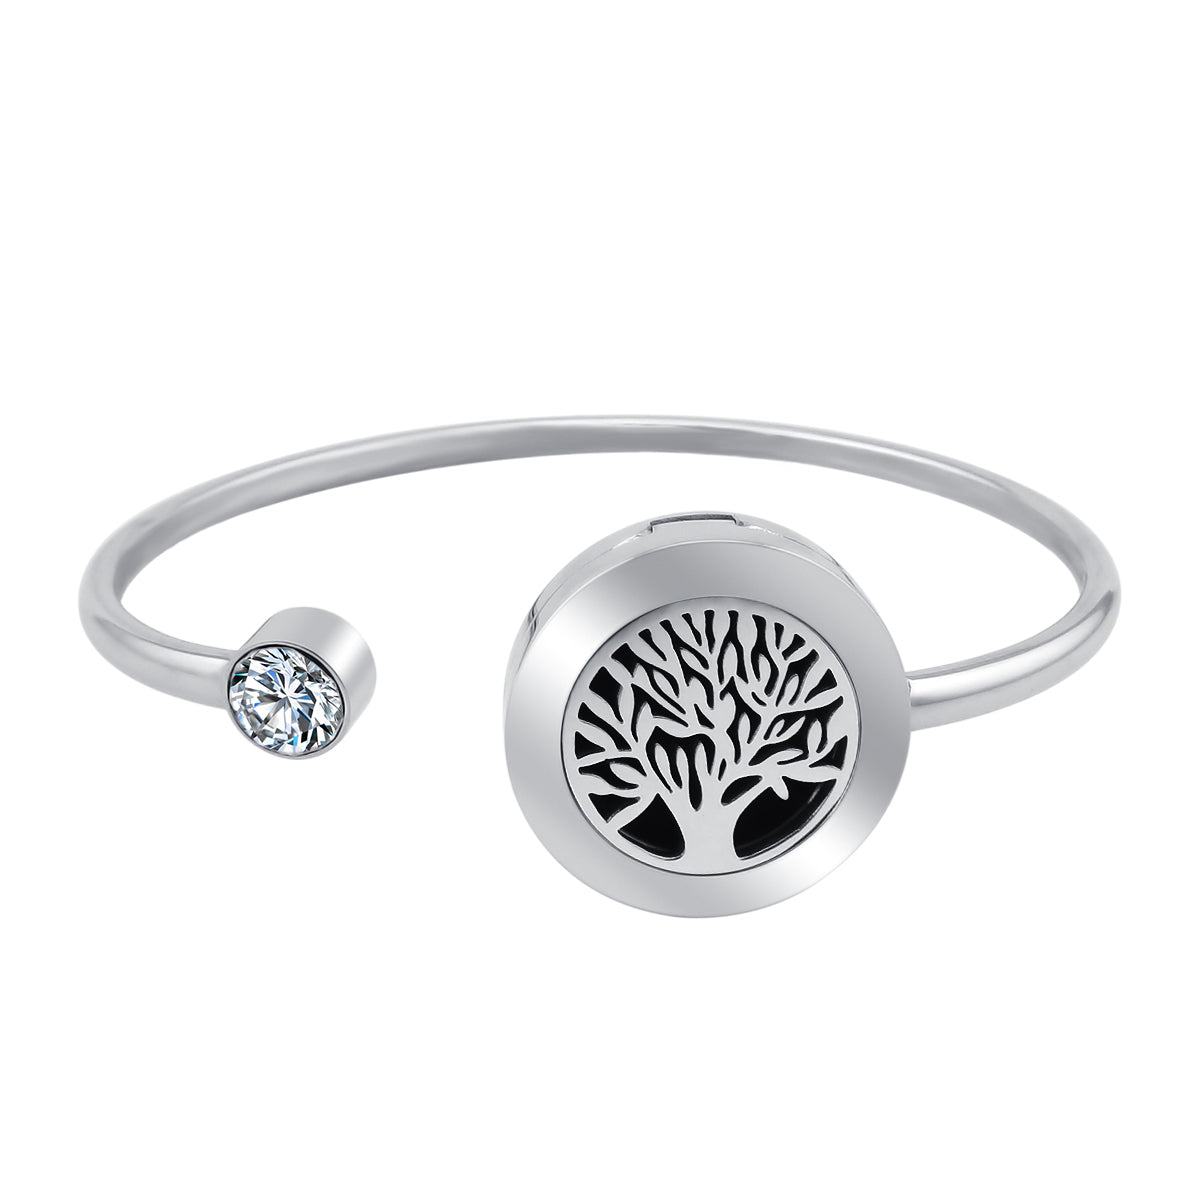 Essential Oil Diffuser Bangle - Tree of Life with Crystal